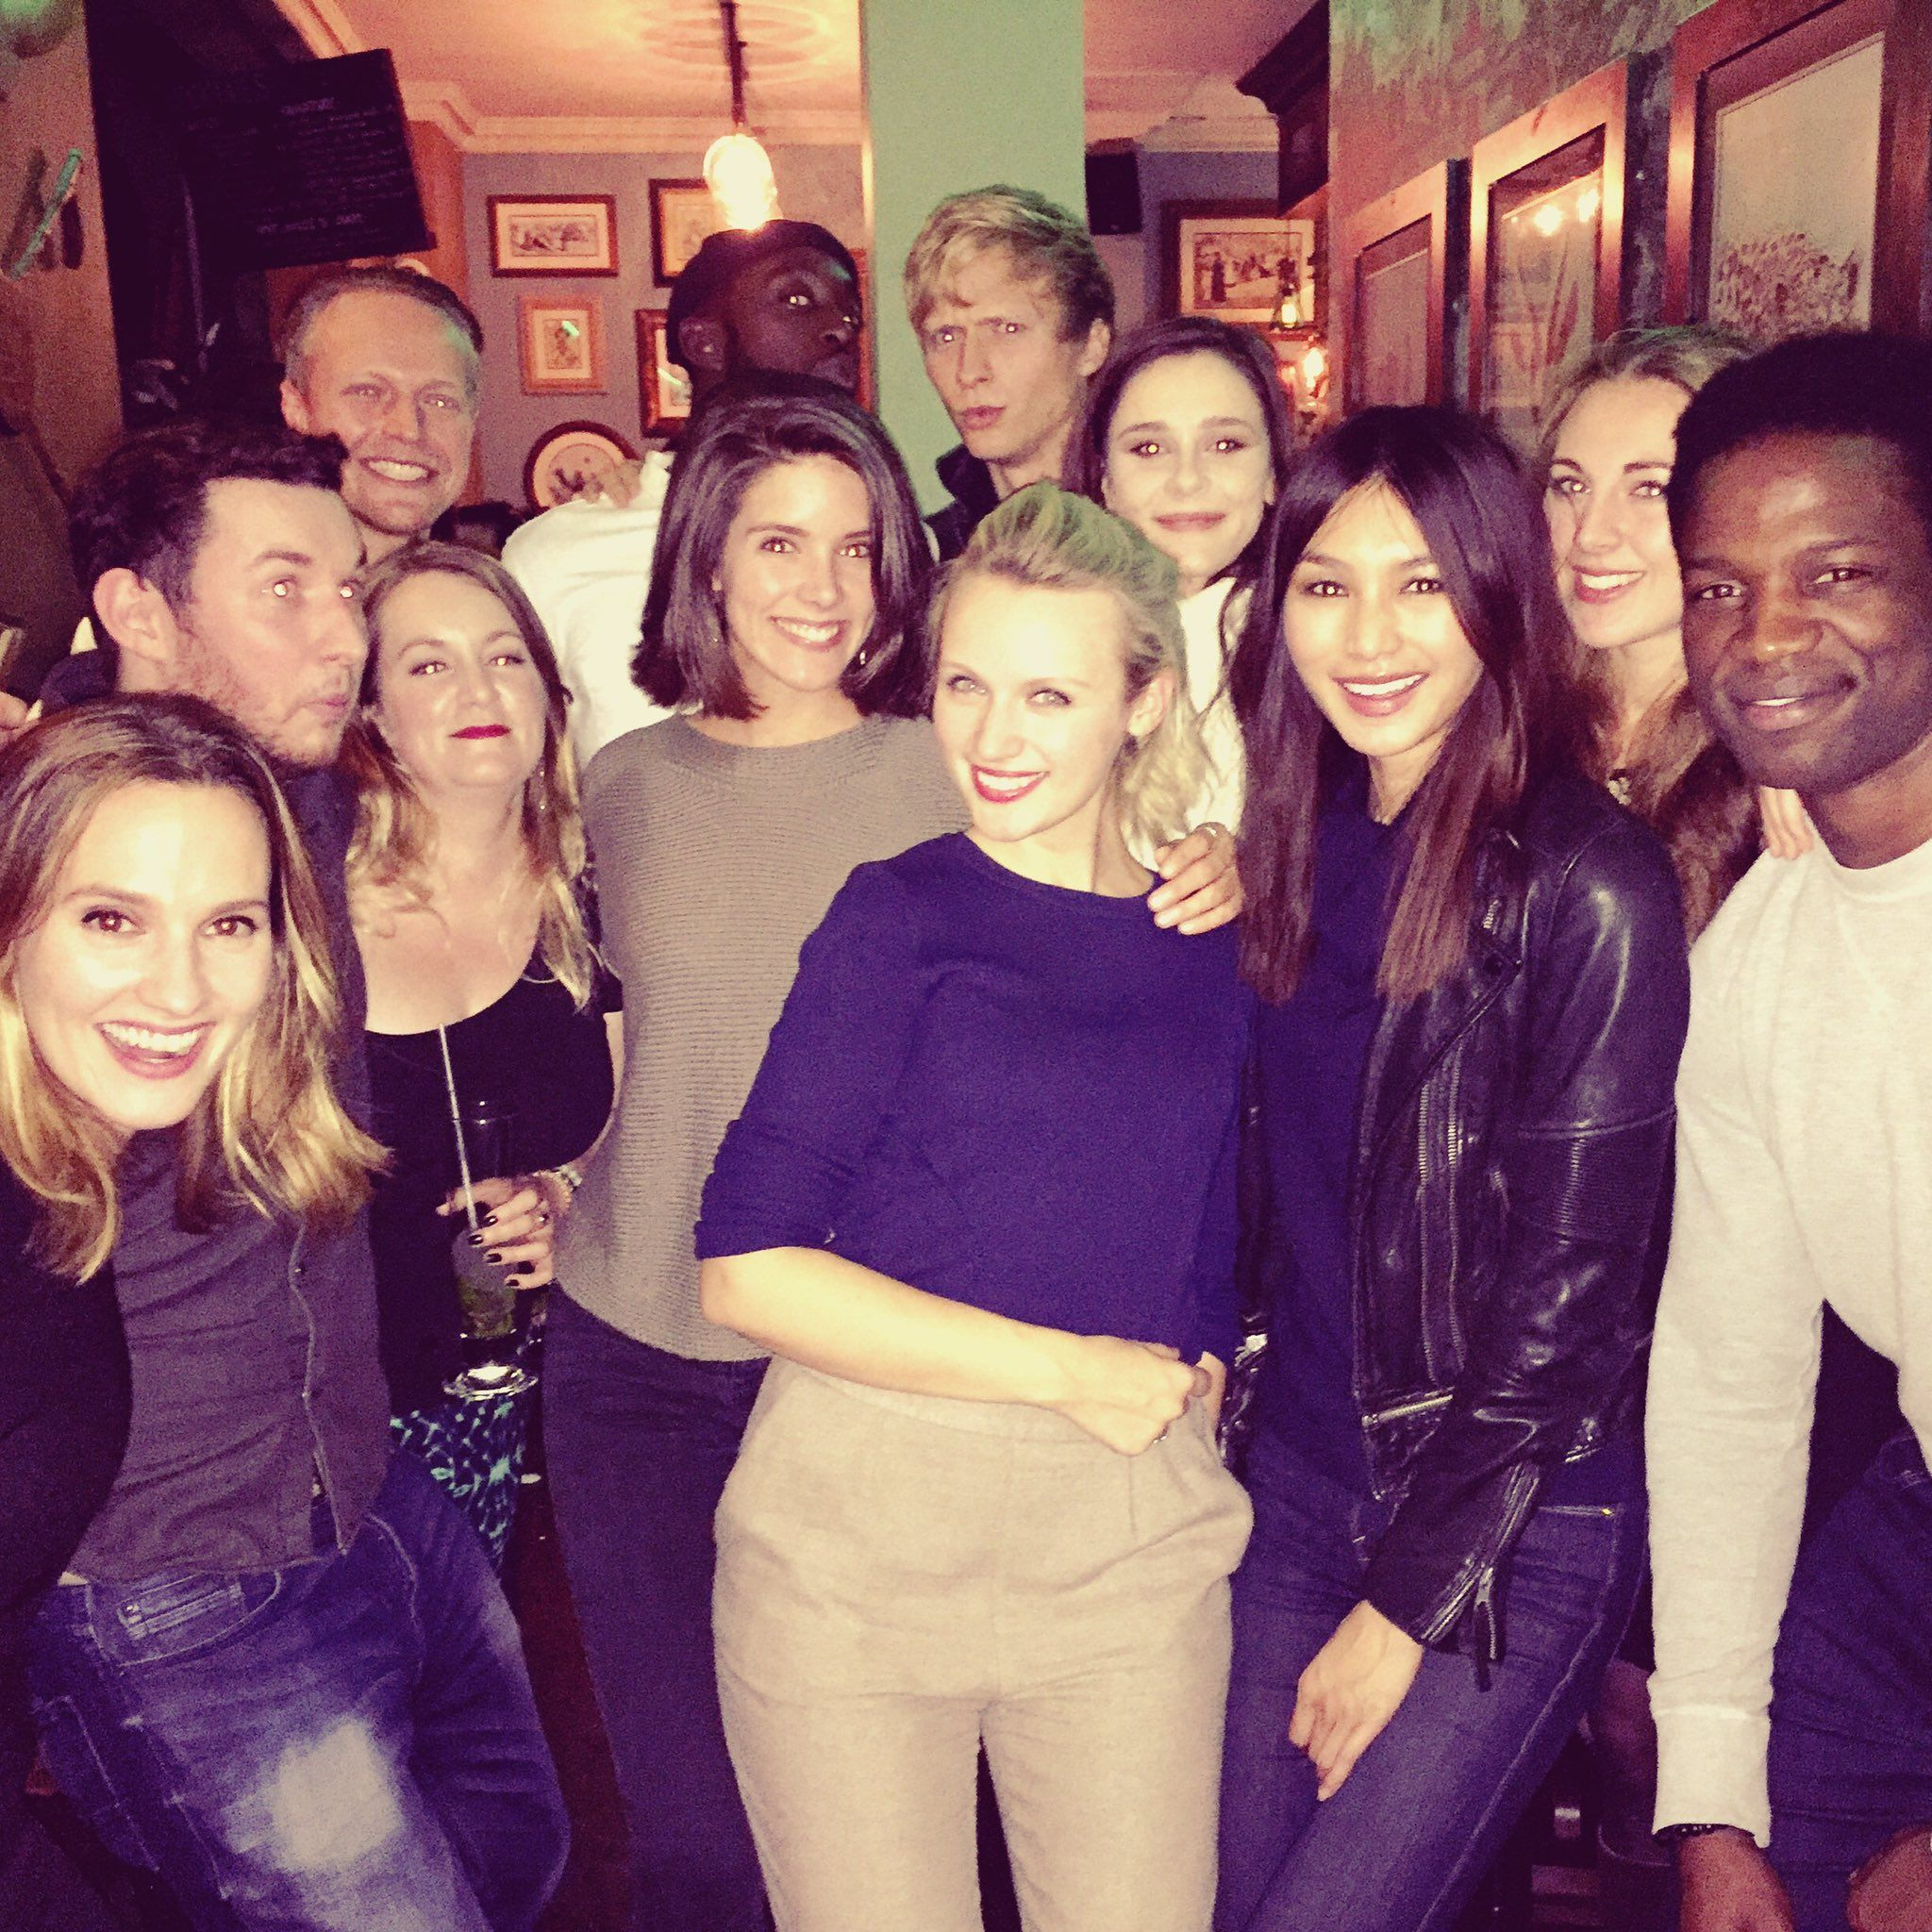 """Gemma Chan on Twitter: """"Some of my favourite #Humans ❤️ https://t.co/jdi2AhpCi7"""""""